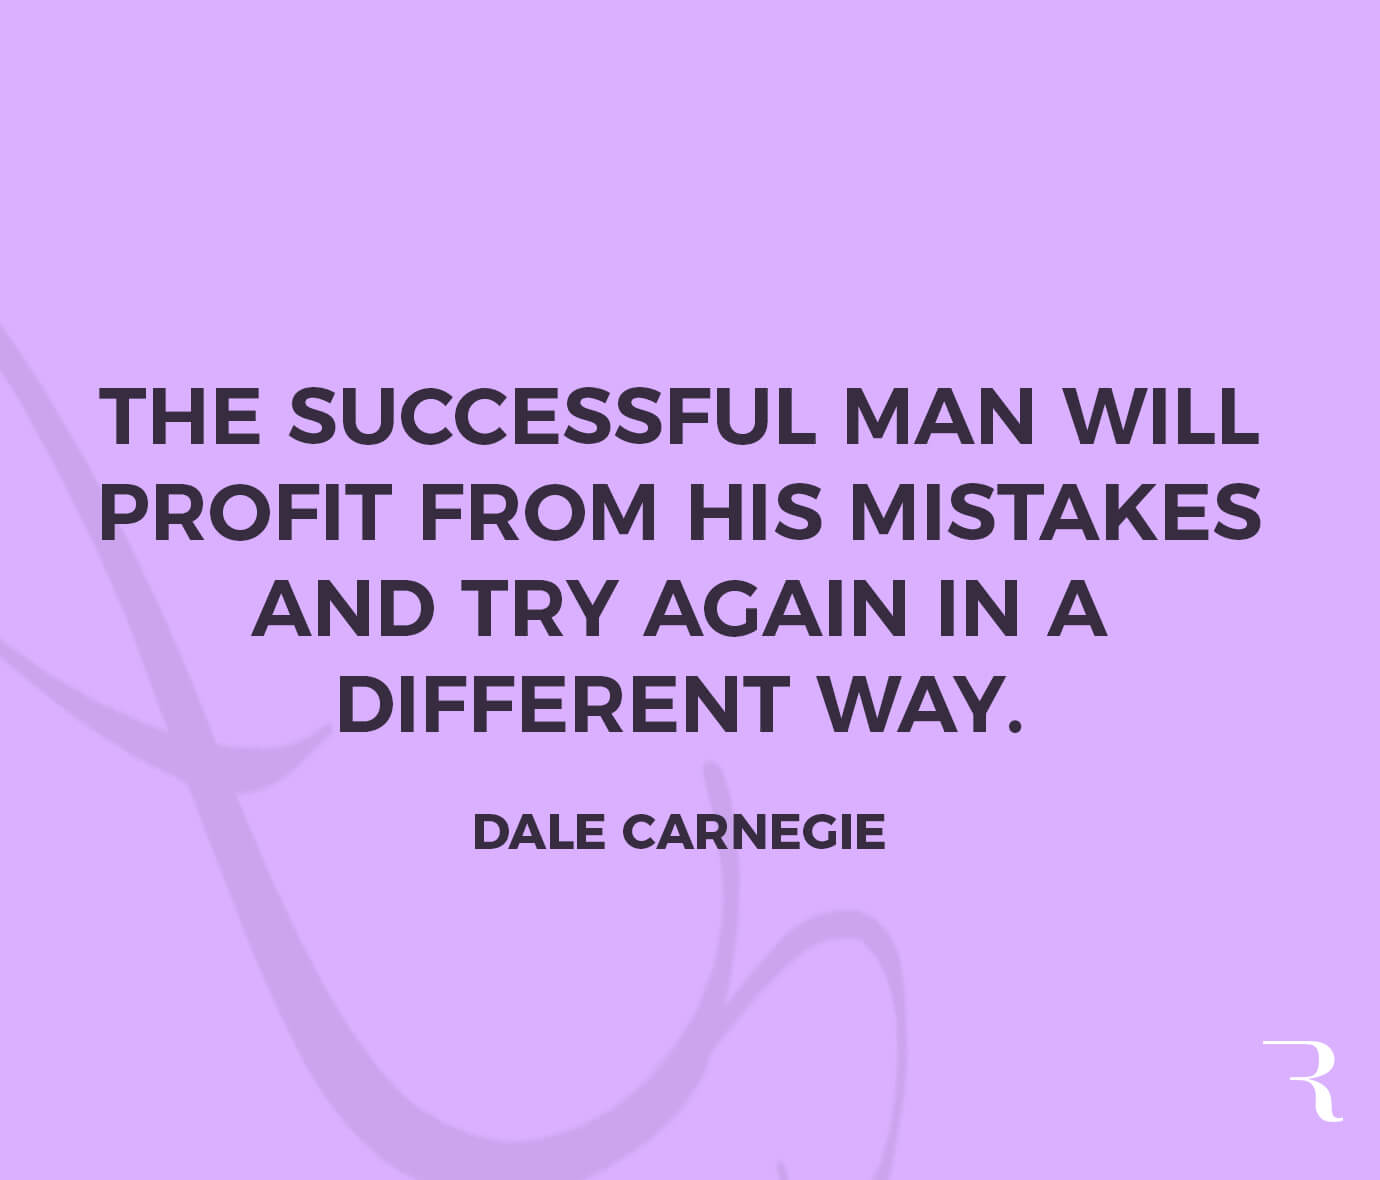 """Motivational Quotes: """"The successful man will profit from his mistakes and try again in a different way."""" 112 Motivational Quotes to Be a Better Entrepreneur"""